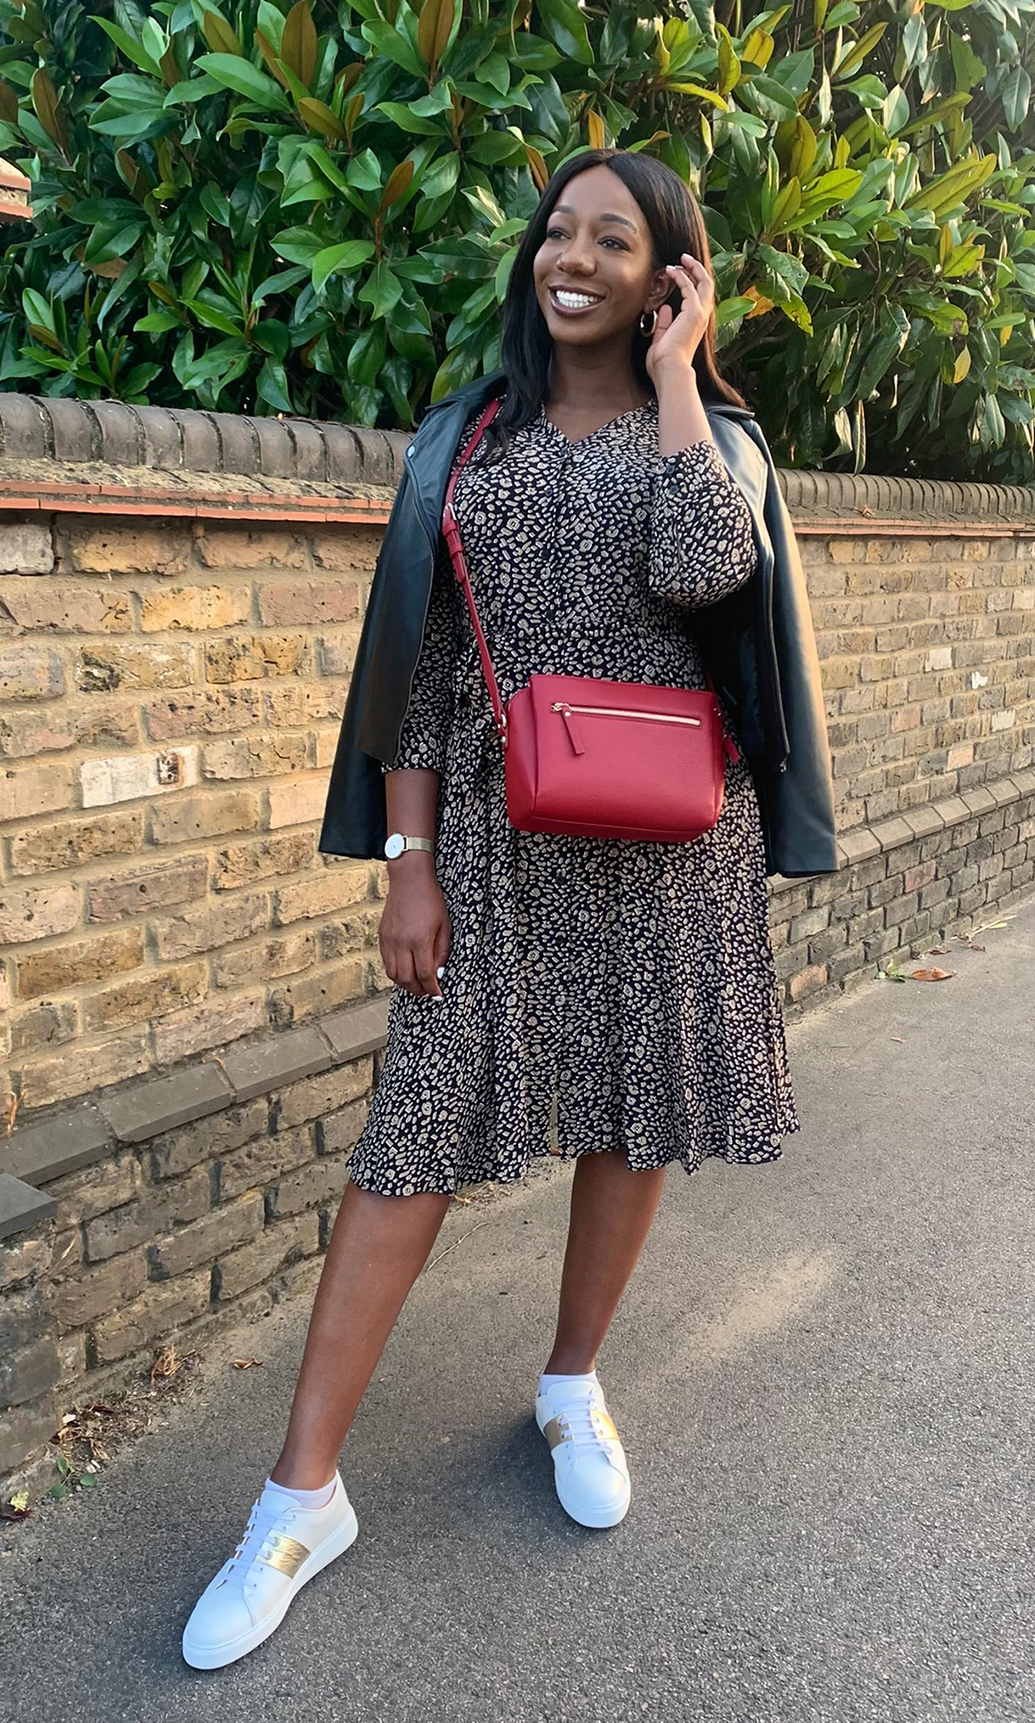 Jessica wears show how to casually style the Hobbs rosaline dress with trainers, cross body bag and leather jacket